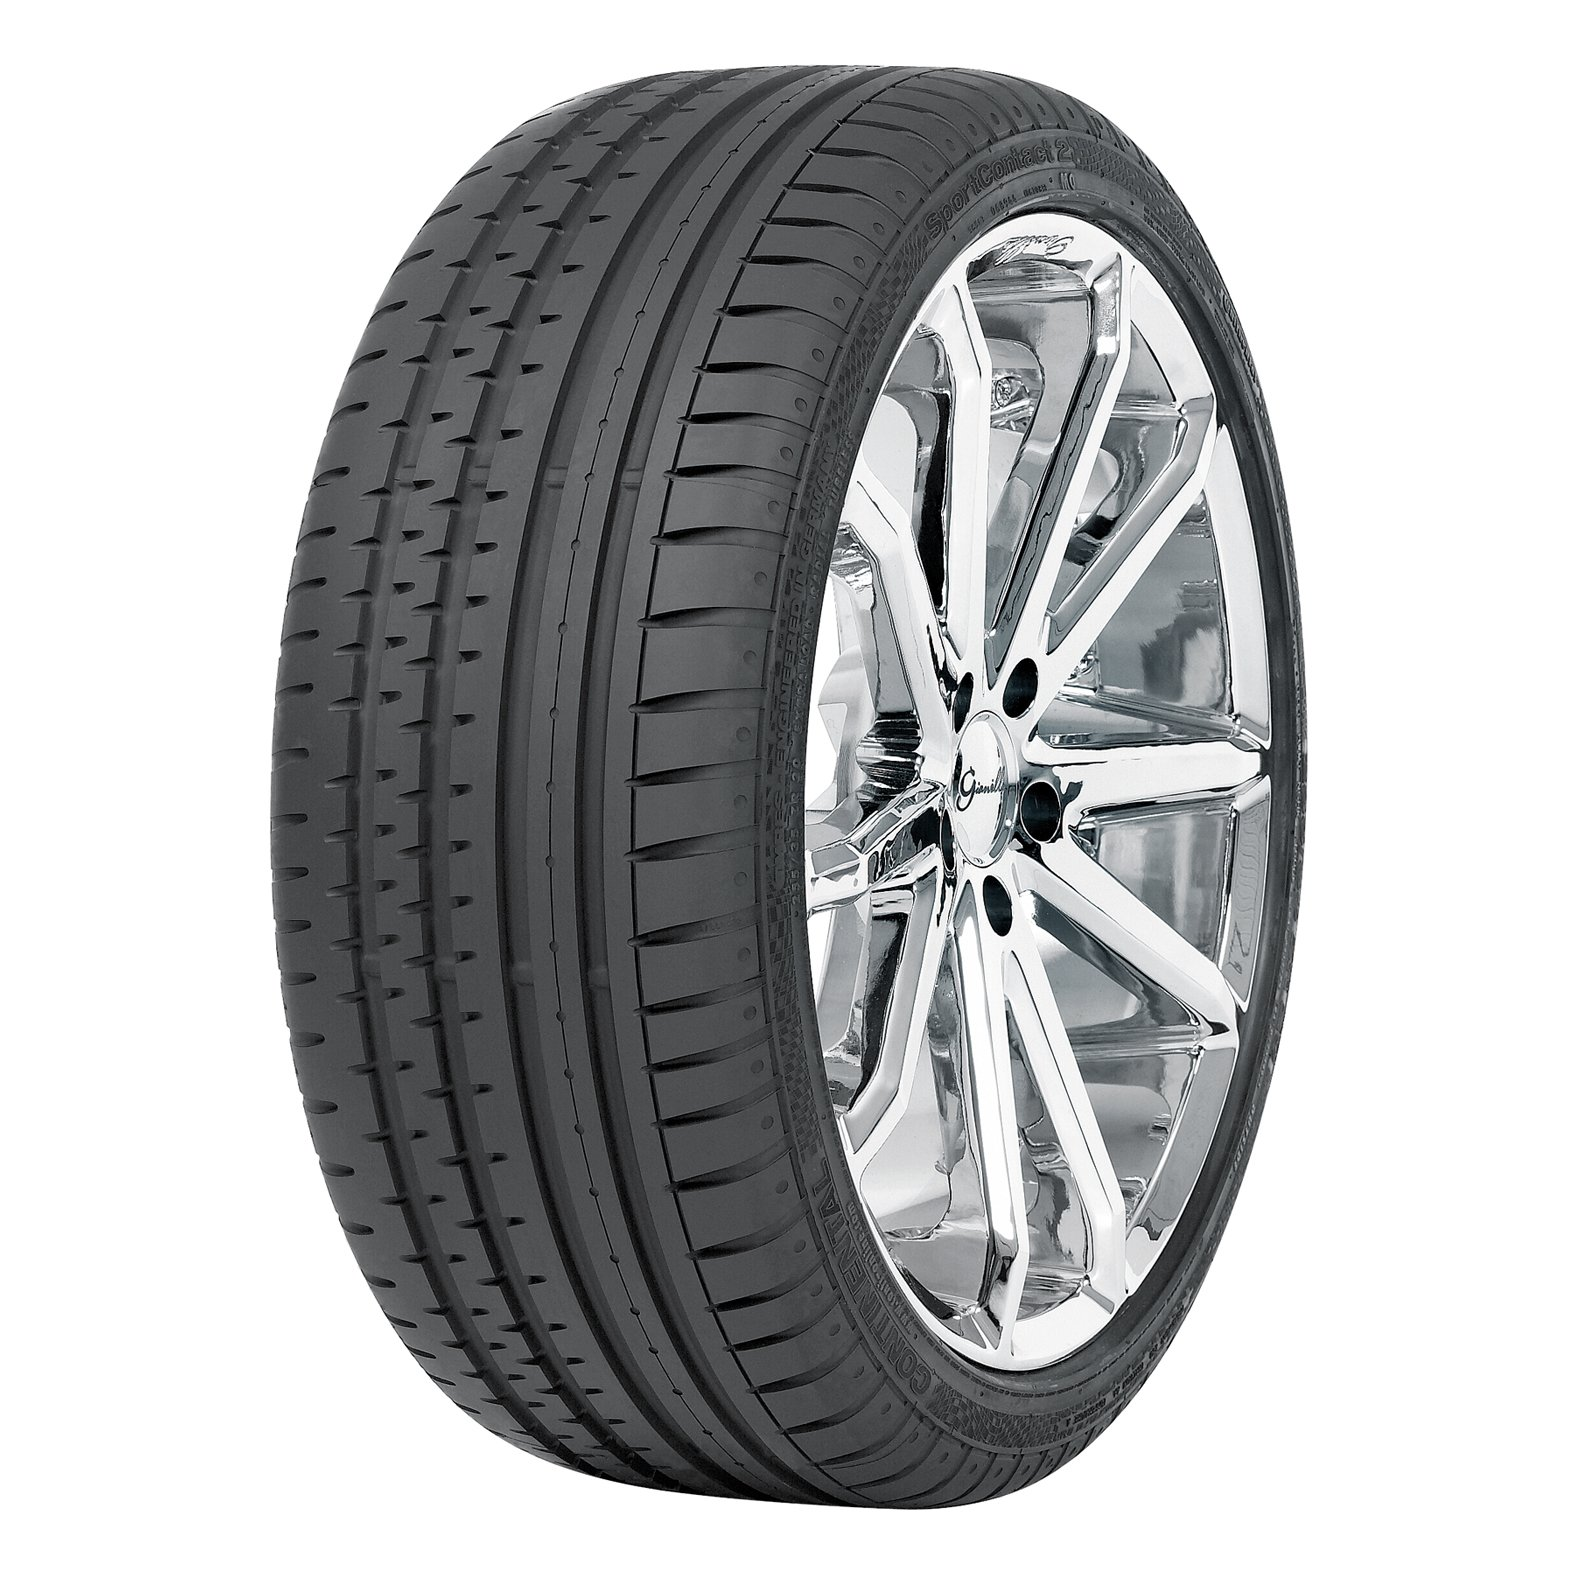 Continental CONTISPORTCONTACT 2 tire - angle